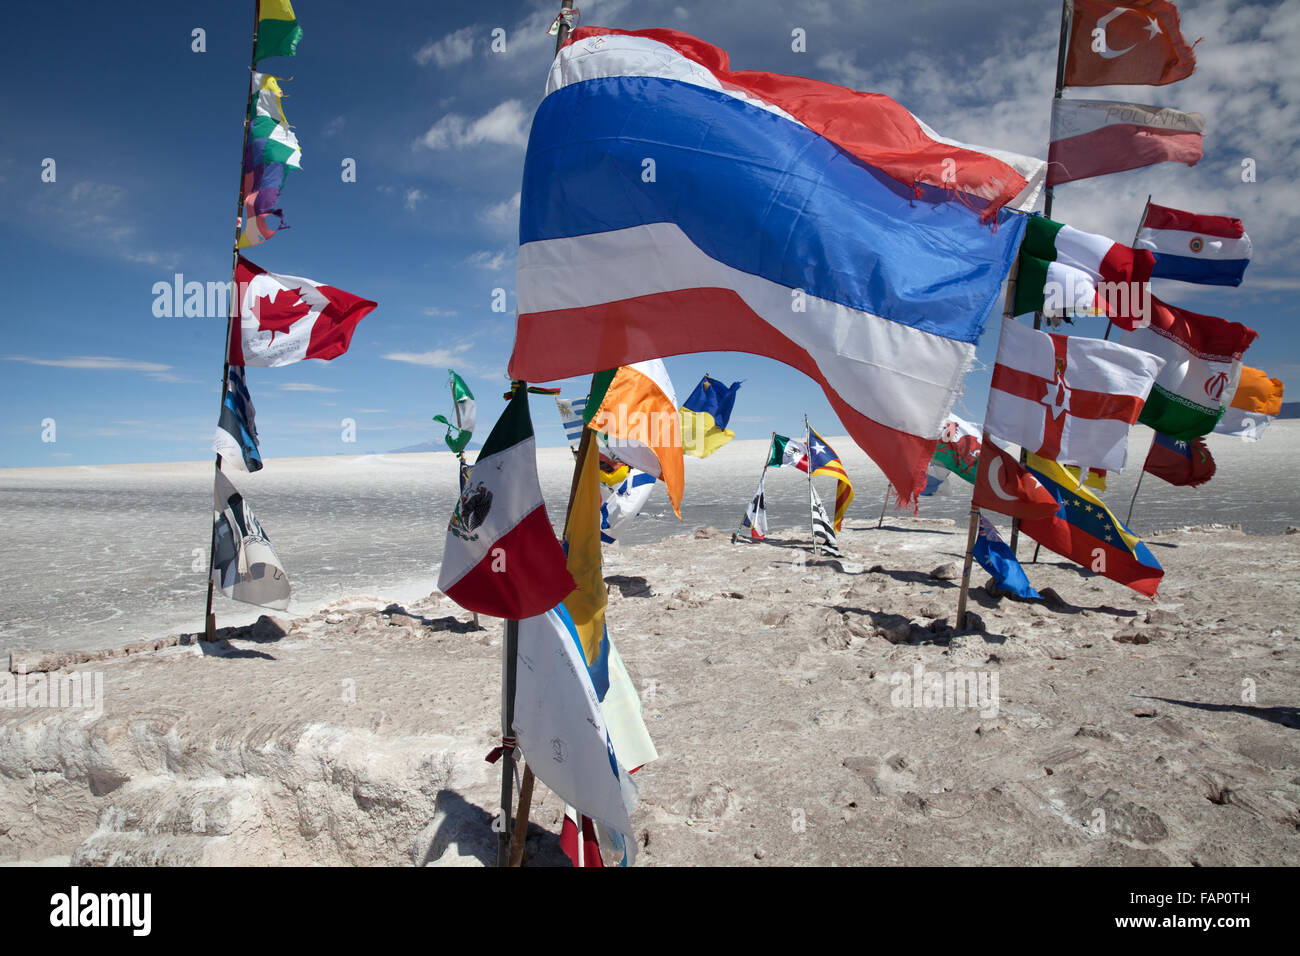 Flags of different countries fly from posts on the Salar de Uyuni (Salt Flats of Uyuni) in Bolivia - Stock Image